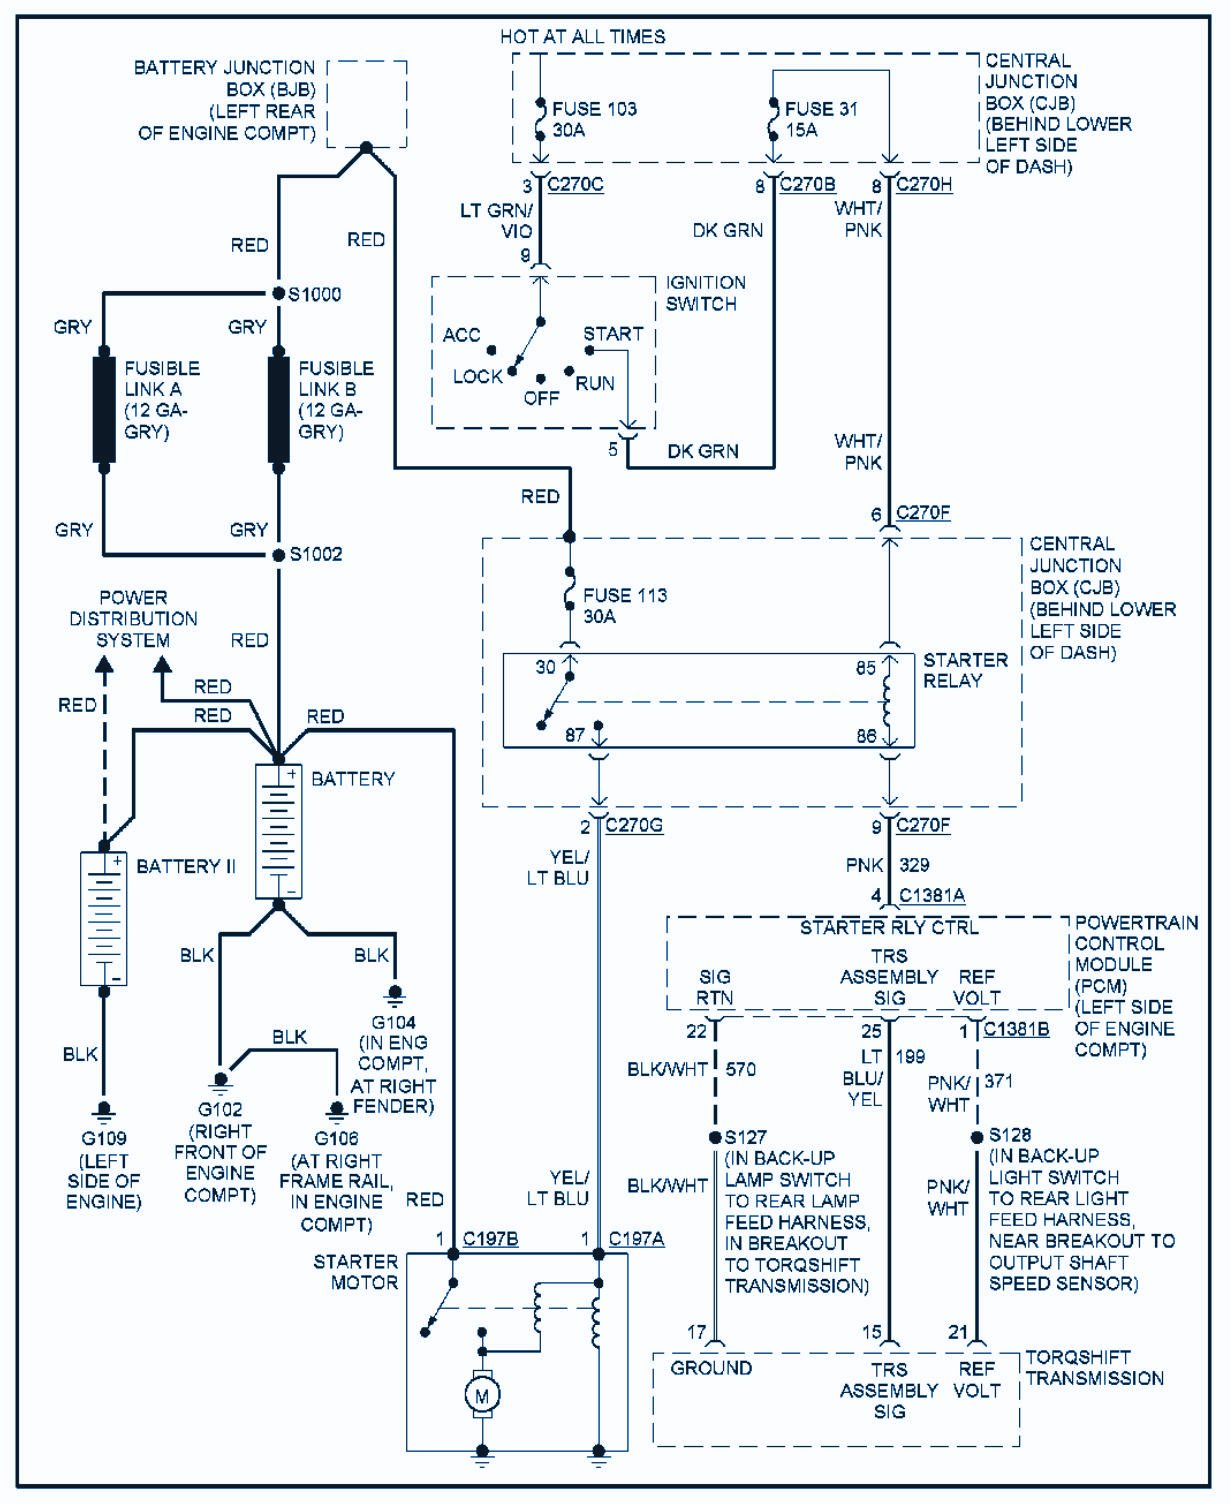 wiring diagram for 1999 ford f350 1996 ford f 350 wiring diagram 1999 f 350 wiring diagram